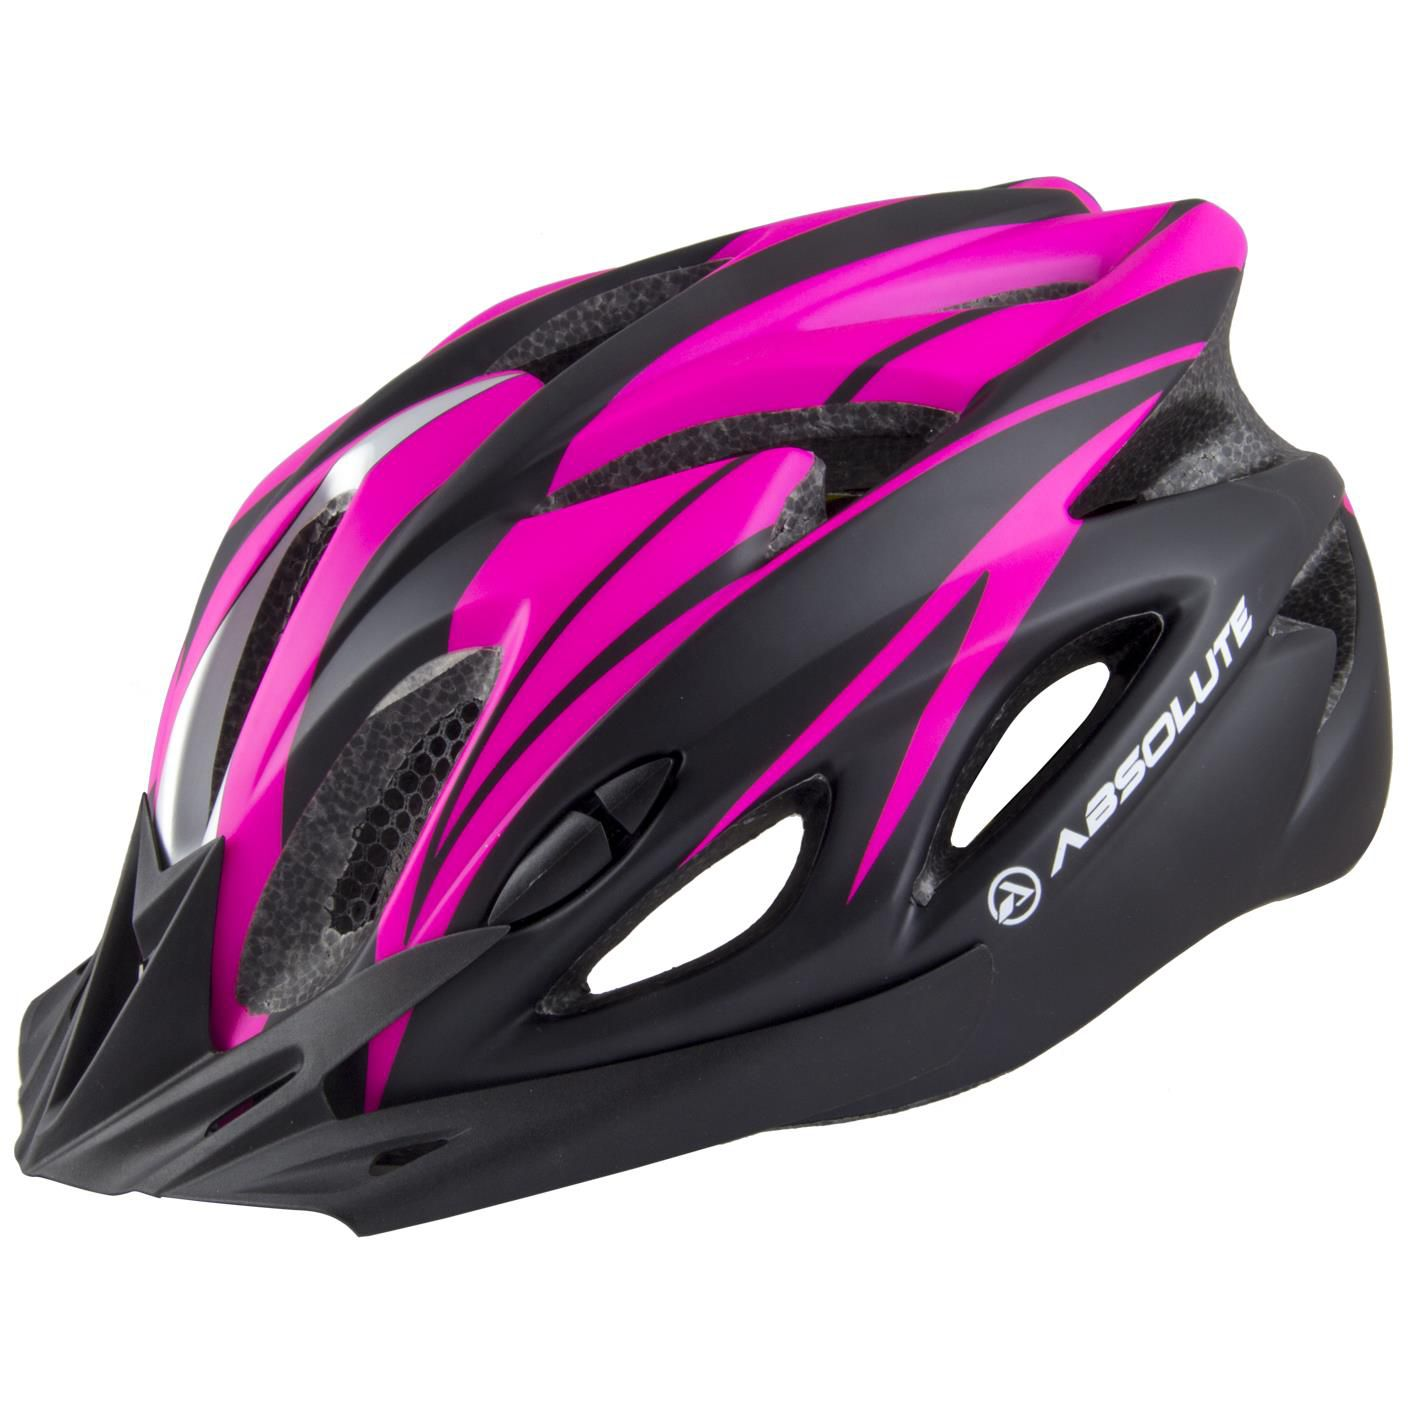 Capacete Ciclismo Bike Absolute Wt012 Led Rosa